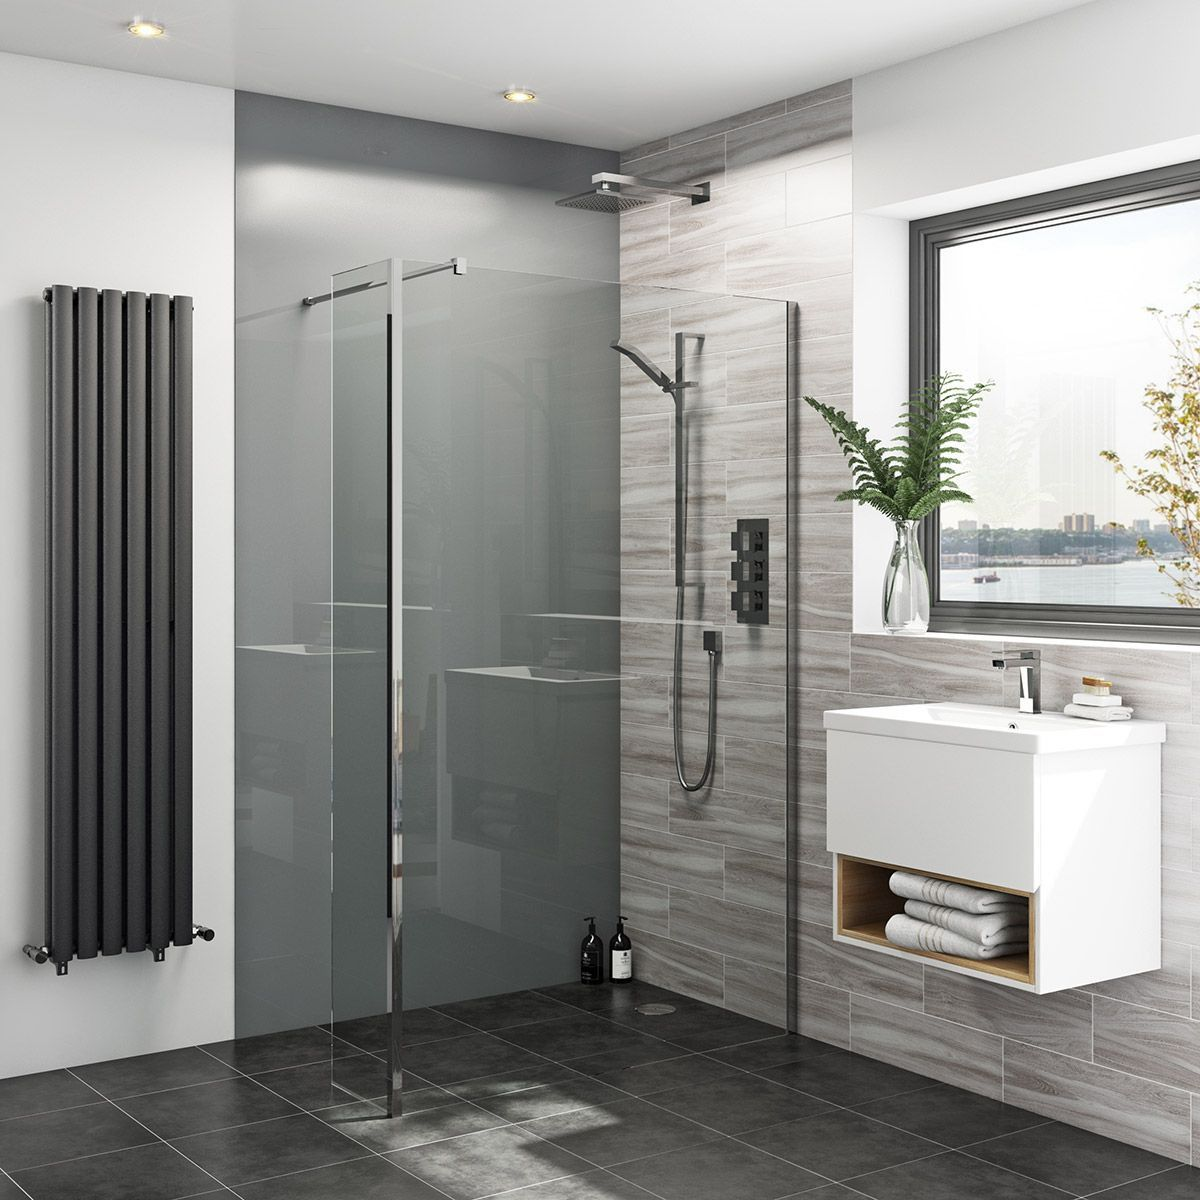 Acrylic Bathroom Wall Panels Nz With Images Bathroom Shower Panels Acrylic Shower Walls Shower Wall Panels